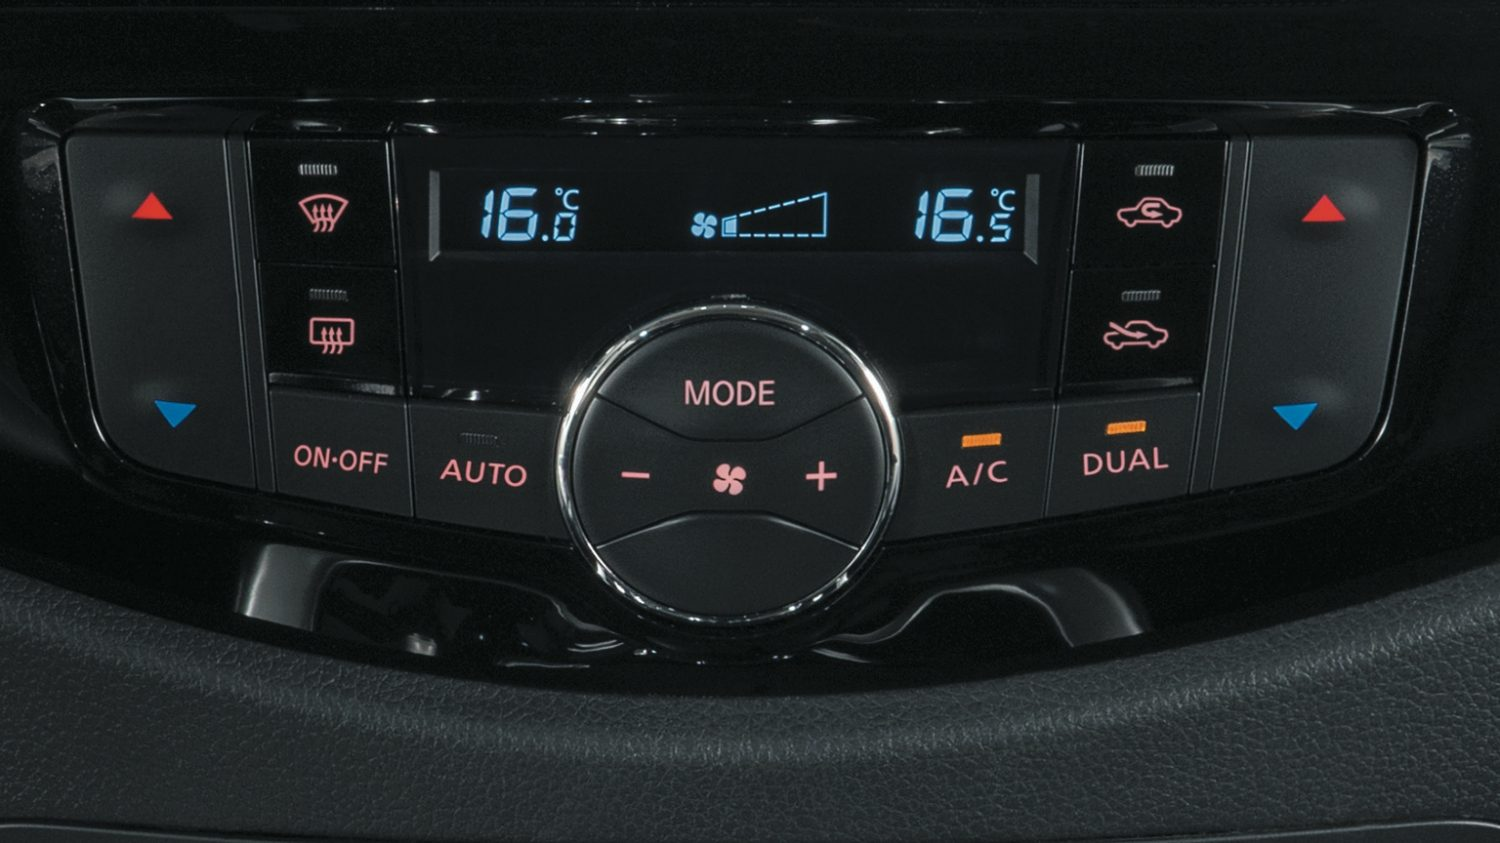 Nissan NP300 Navara - Climate control system